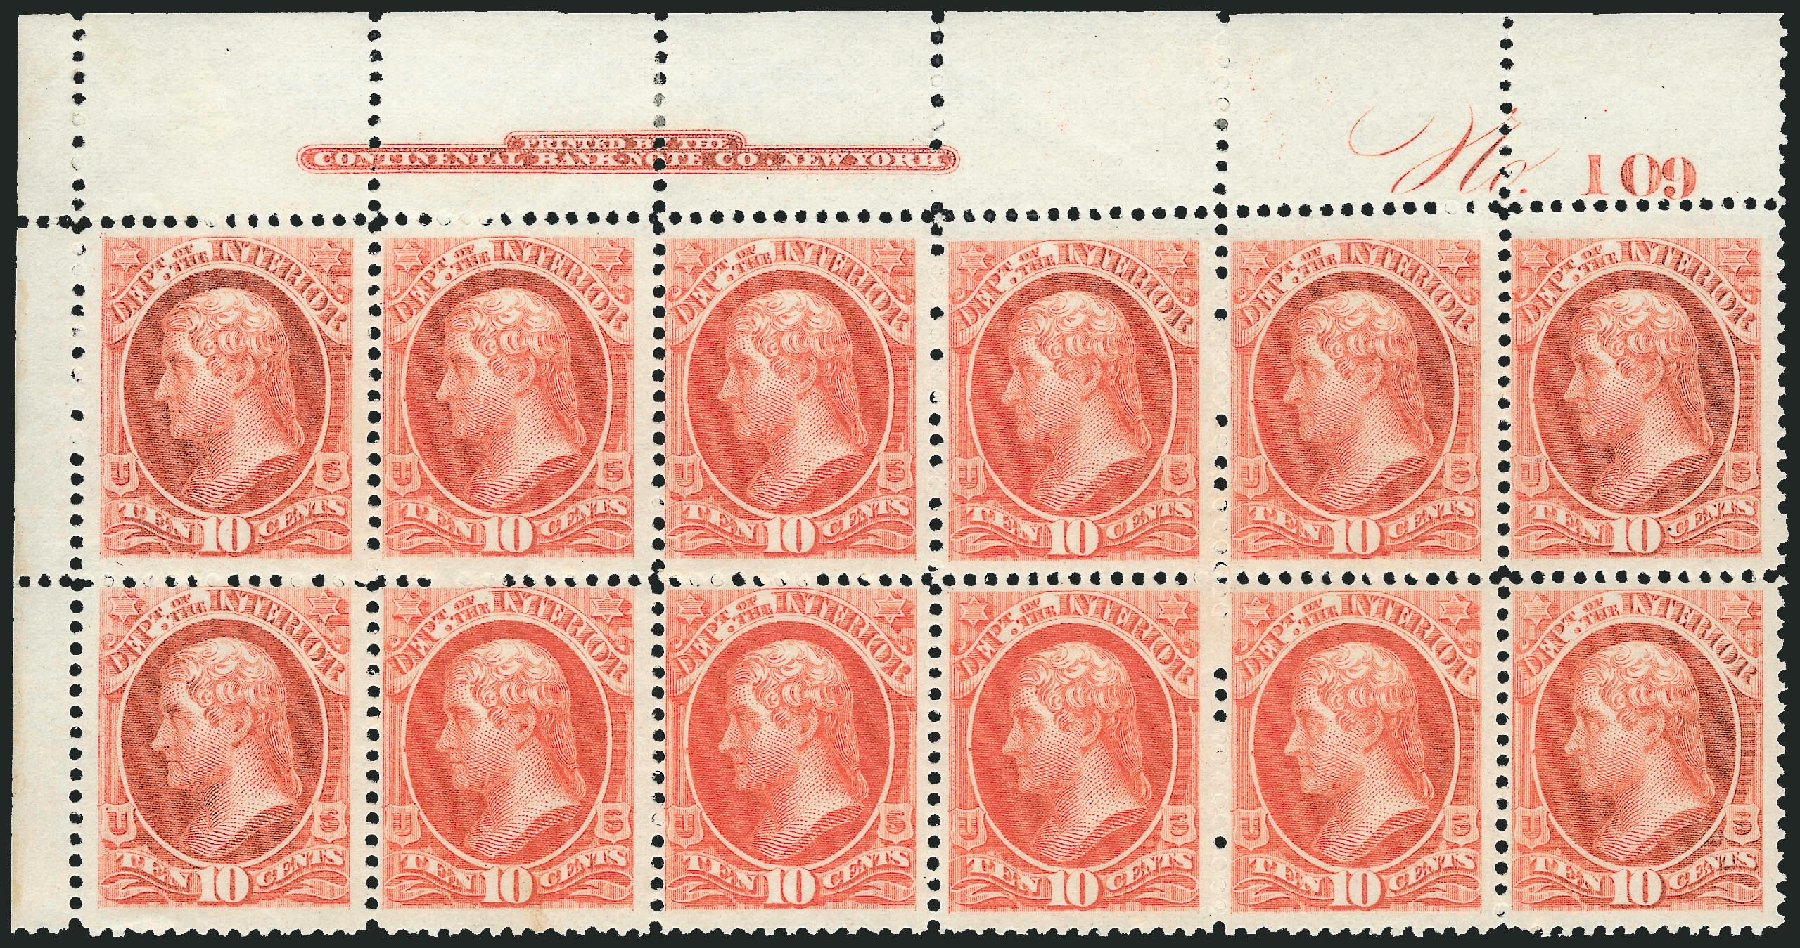 Value of US Stamps Scott Cat. #O19 - 10c 1873 Interior Official. Robert Siegel Auction Galleries, Jul 2014, Sale 1077, Lot 443